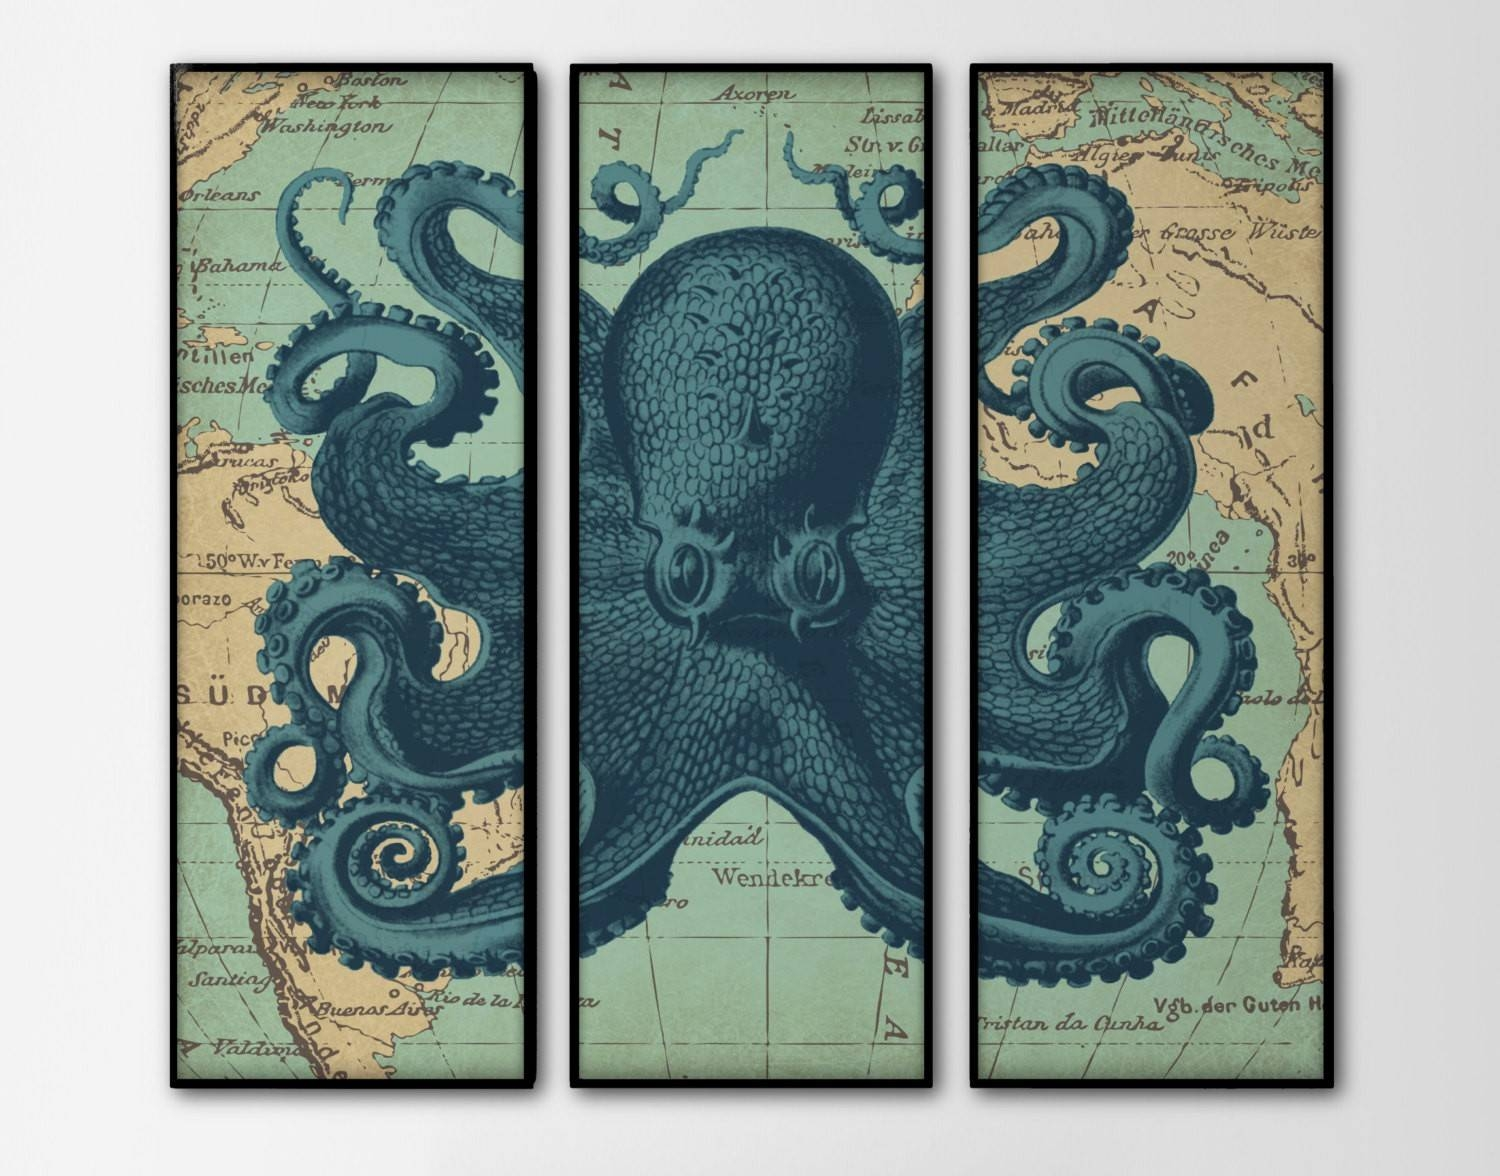 Home Interiors: Design Inspirations About Home Decor And Home Pertaining To Most Recent Nautical Map Wall Art (View 12 of 20)